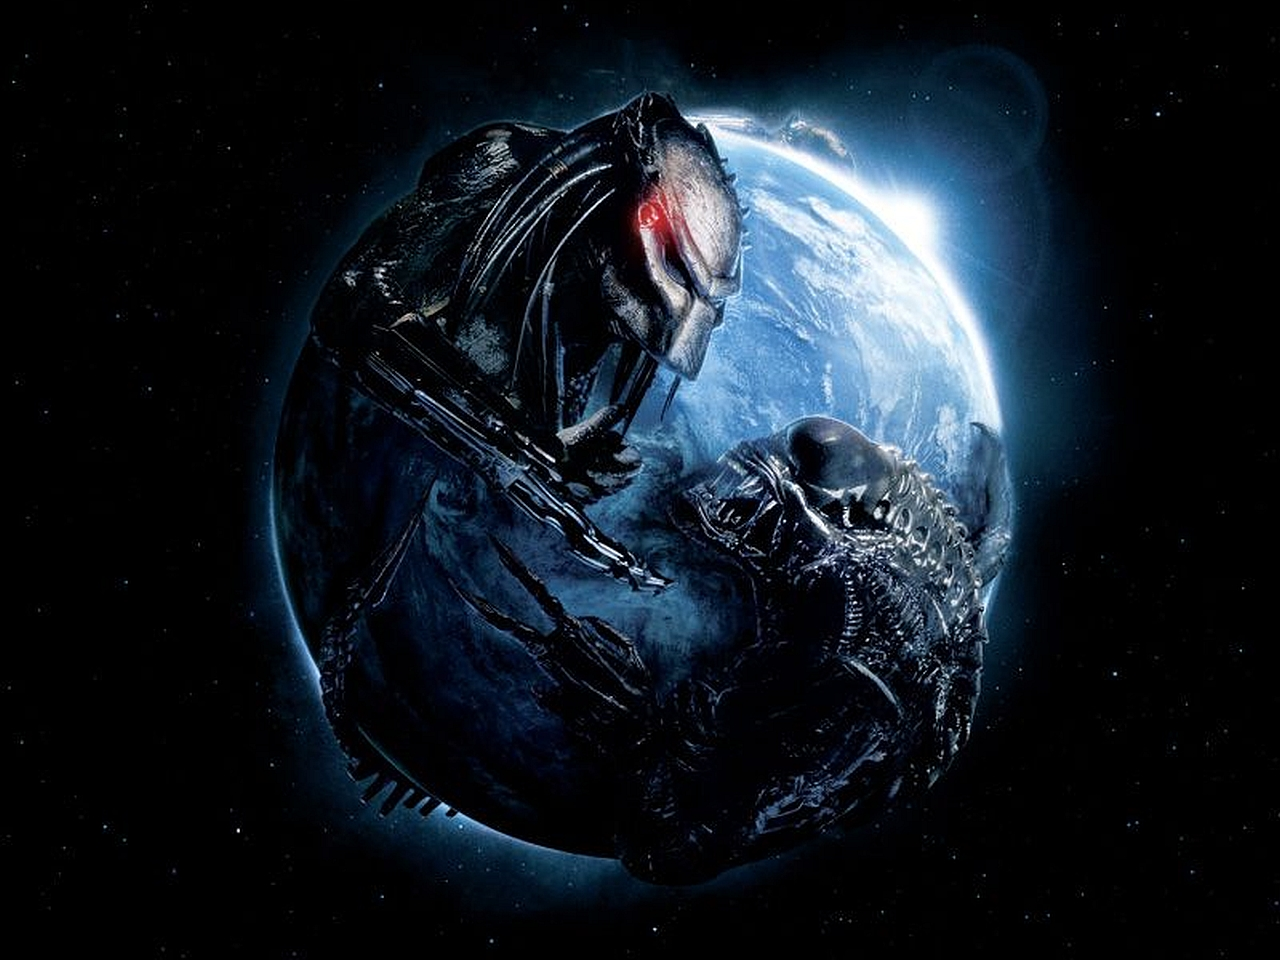 Alien Vs Predator Wide HD wallpapers   Alien Vs Predator Wide 1280x960